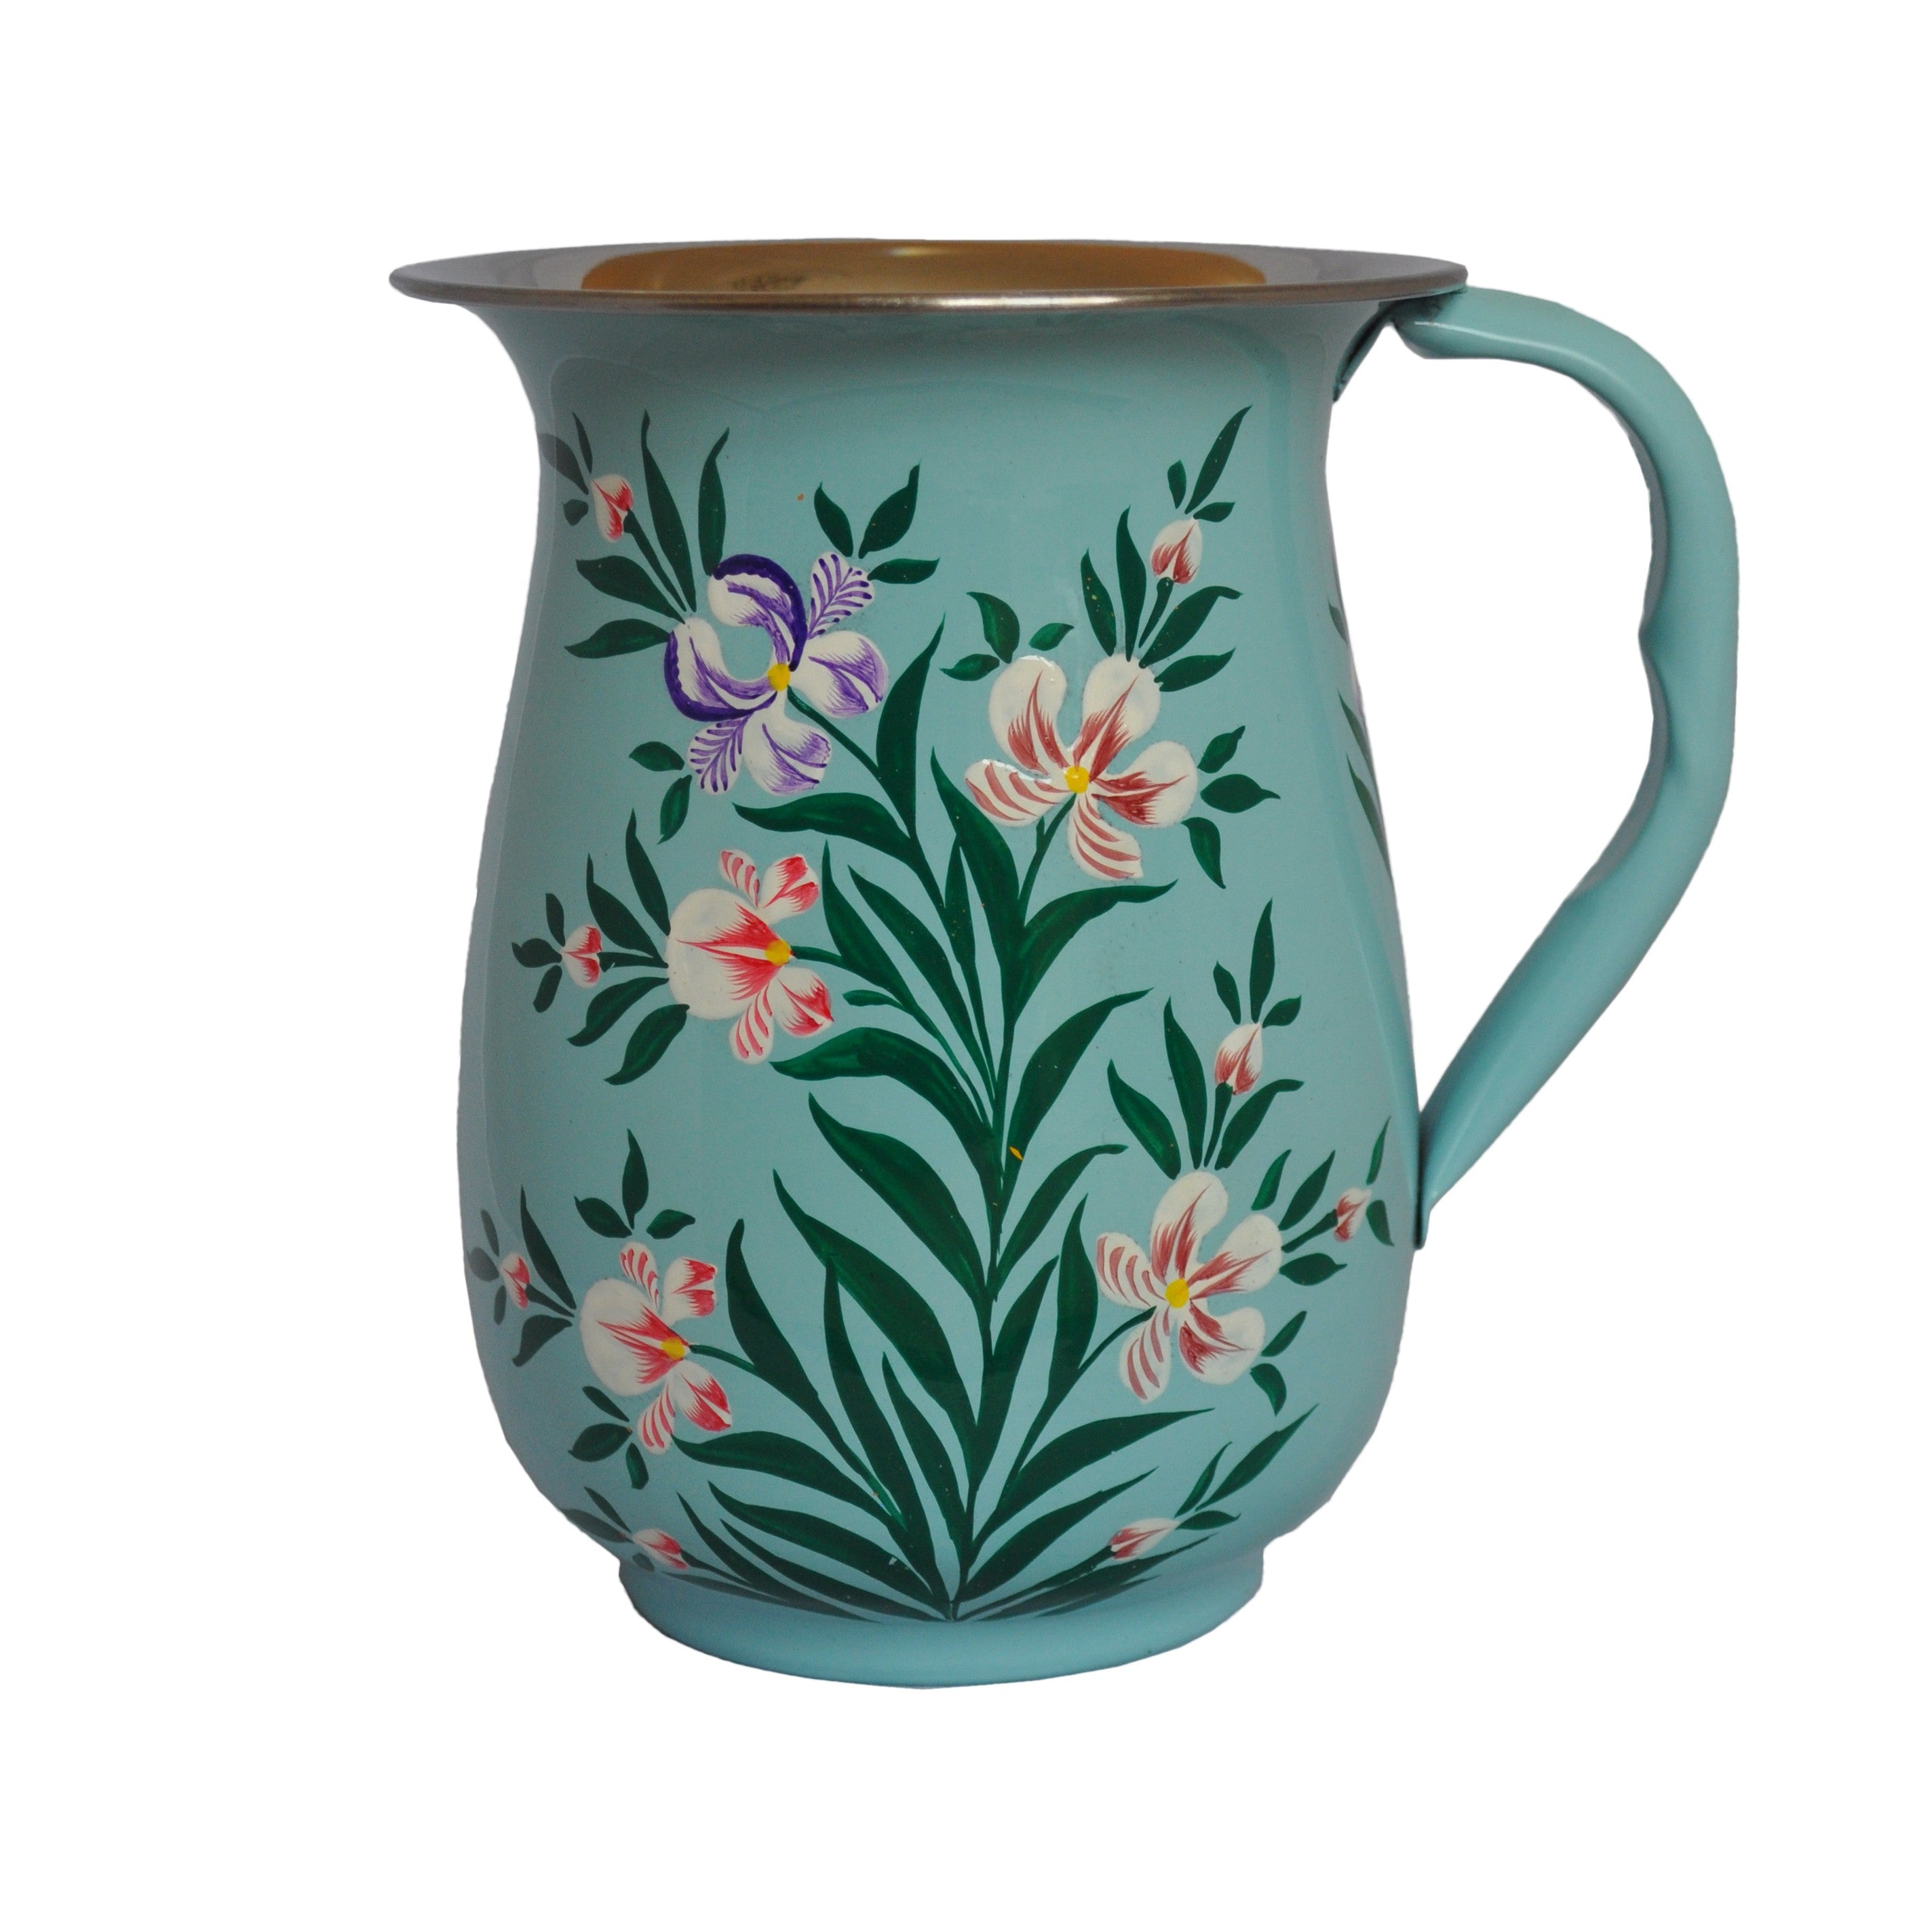 Hand Painted Enamel Jug by Jasmine White on OOSTOR.com